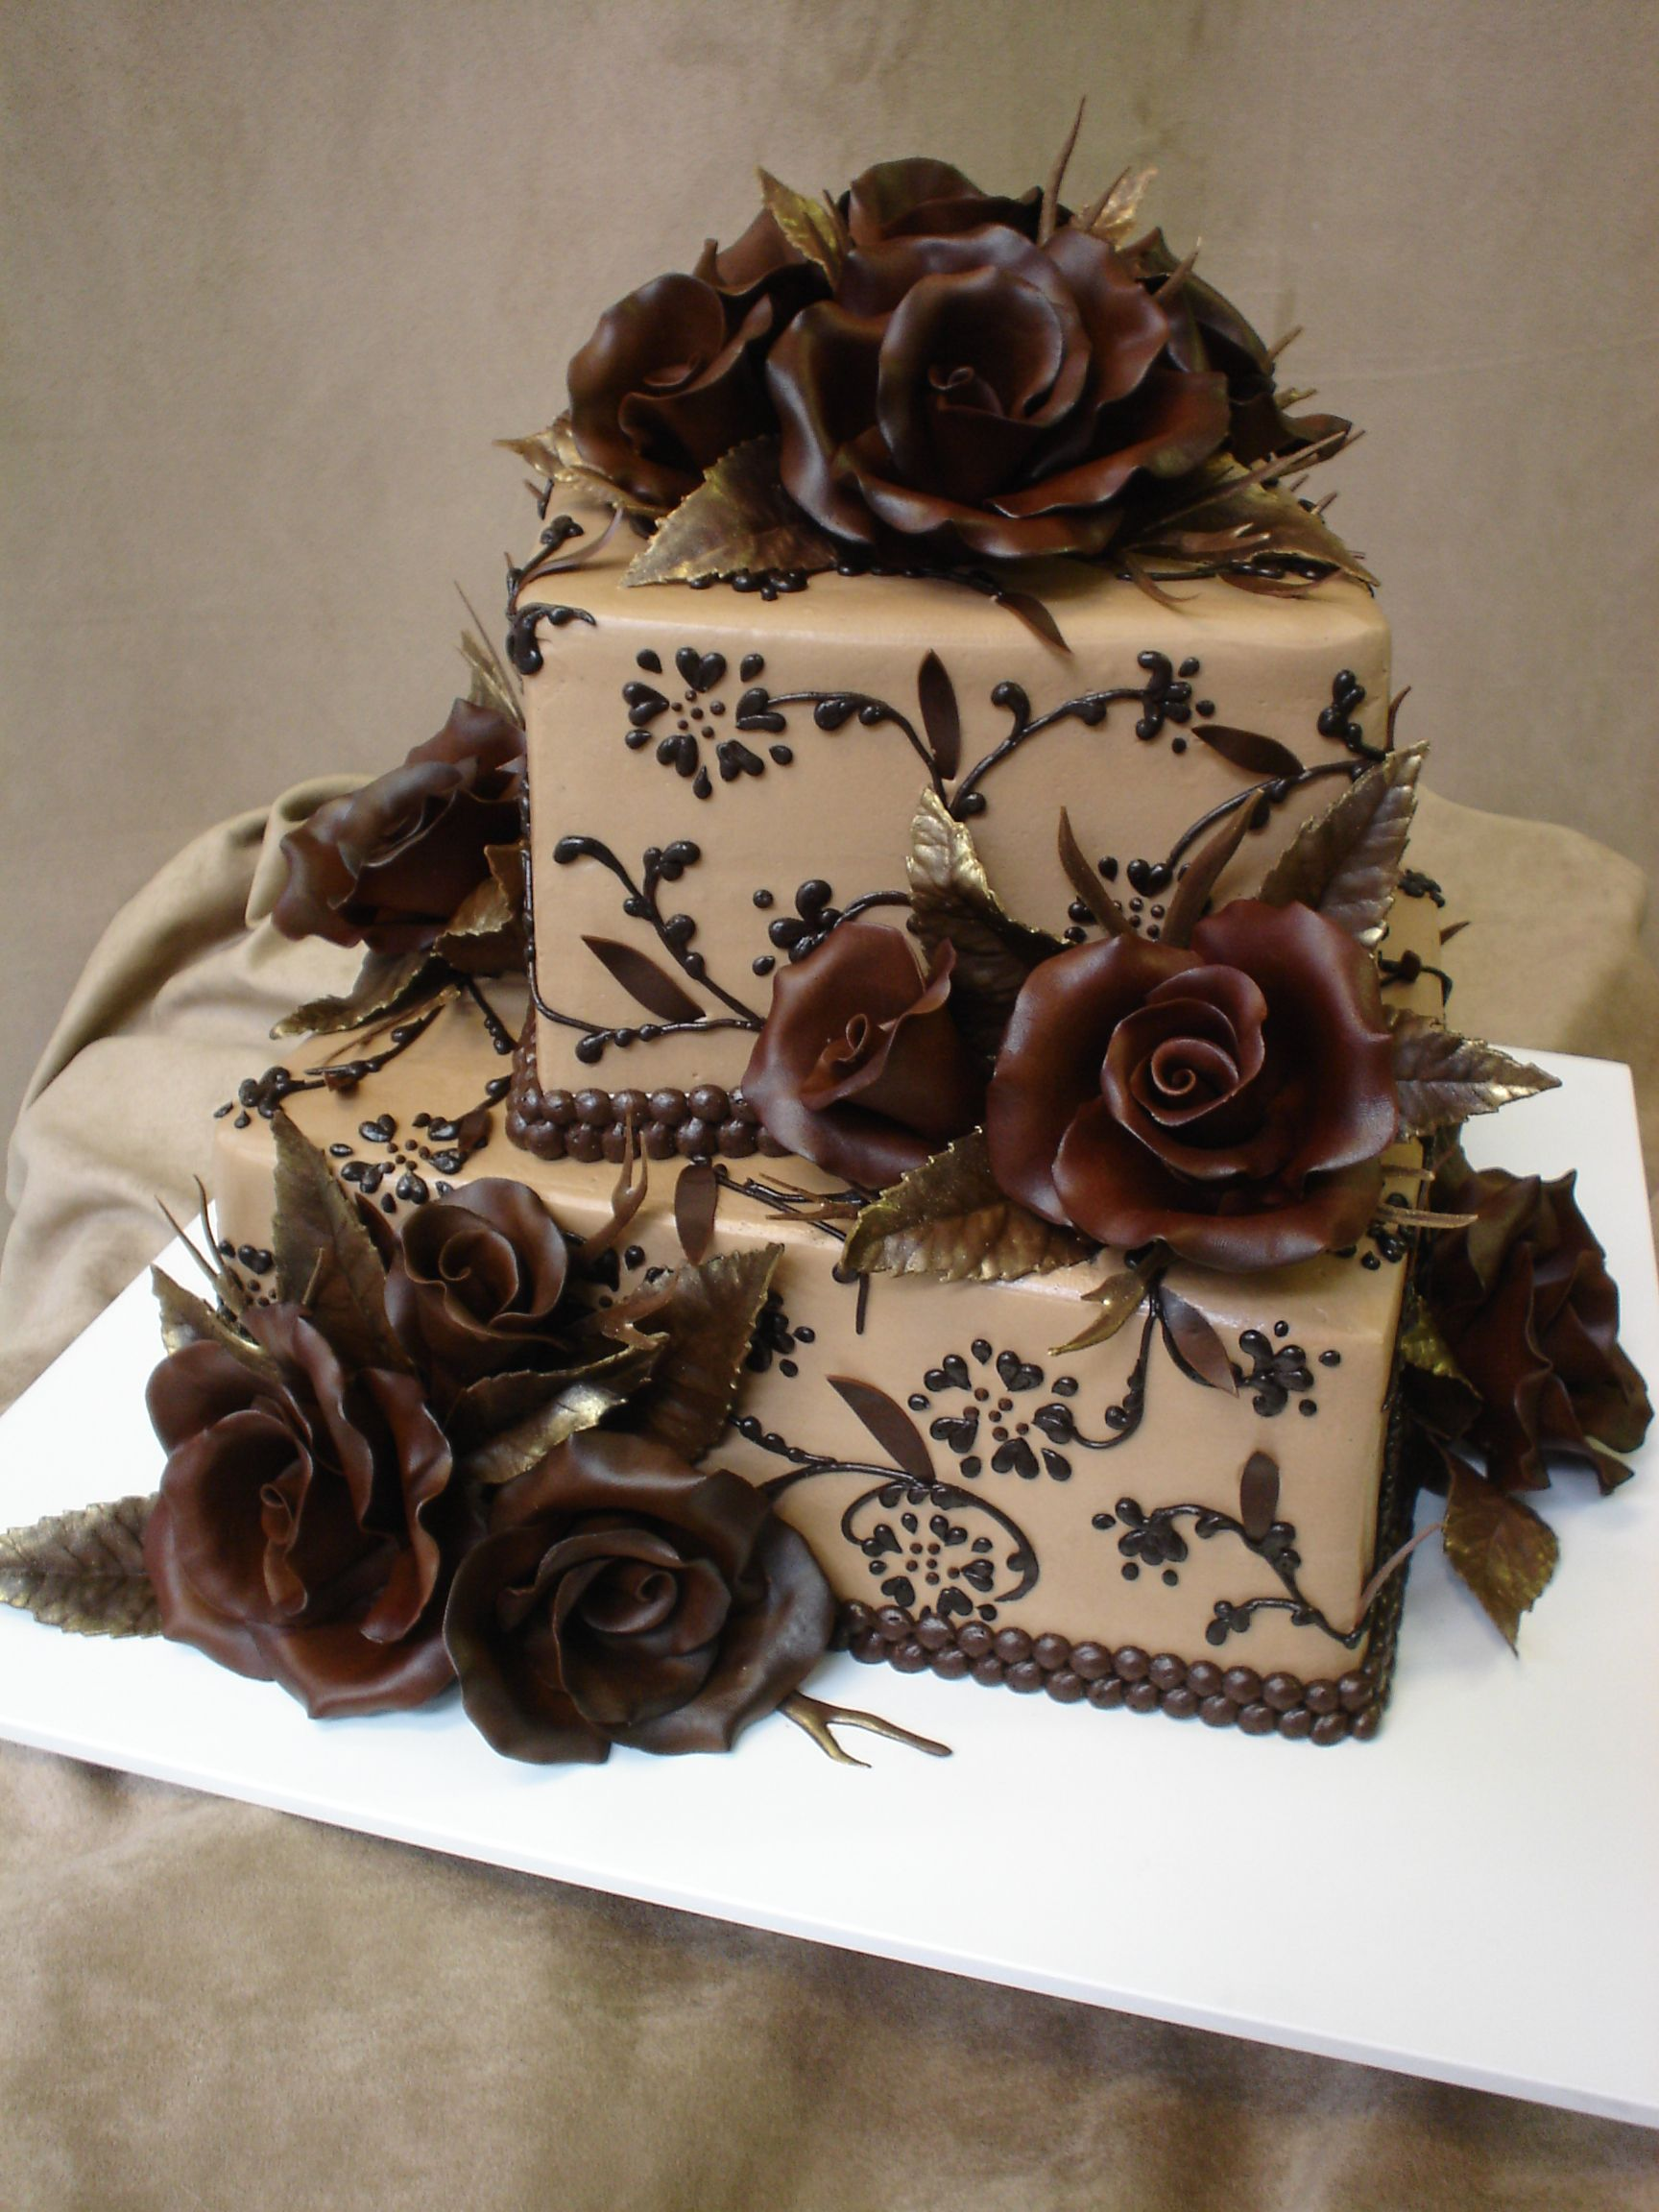 Chocolate Rose Cake With Gold Accents I Made For My Mom S